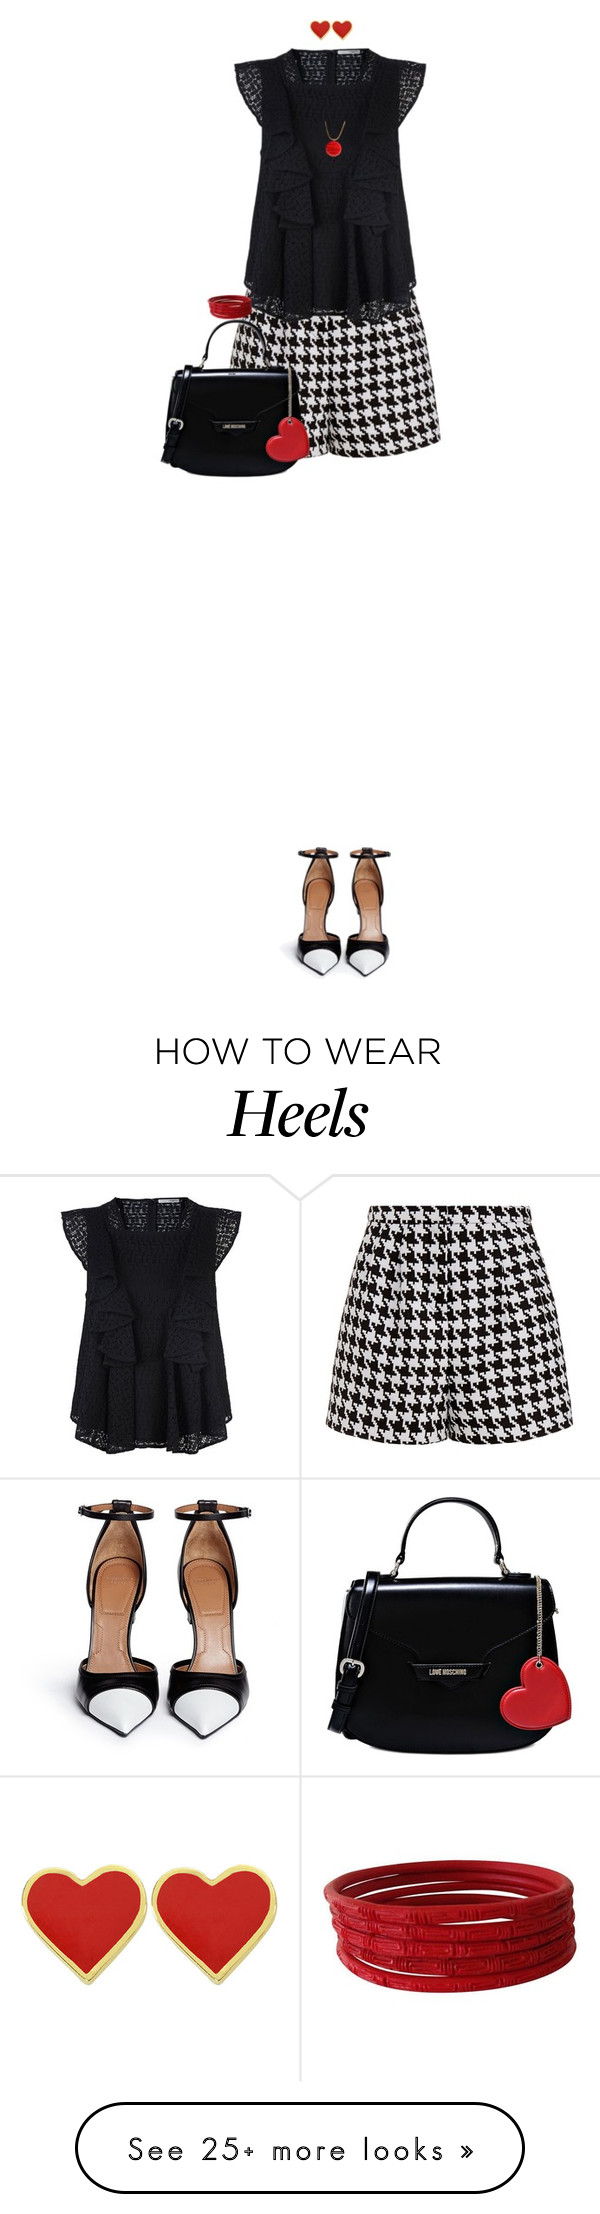 """""""High Waist Shorts"""" by ittie-kittie on Polyvore featuring Emma Cook, Rebecca Minkoff, Givenchy, Love Moschino, Lanvin, women's clothing, women, female, woman and misses"""